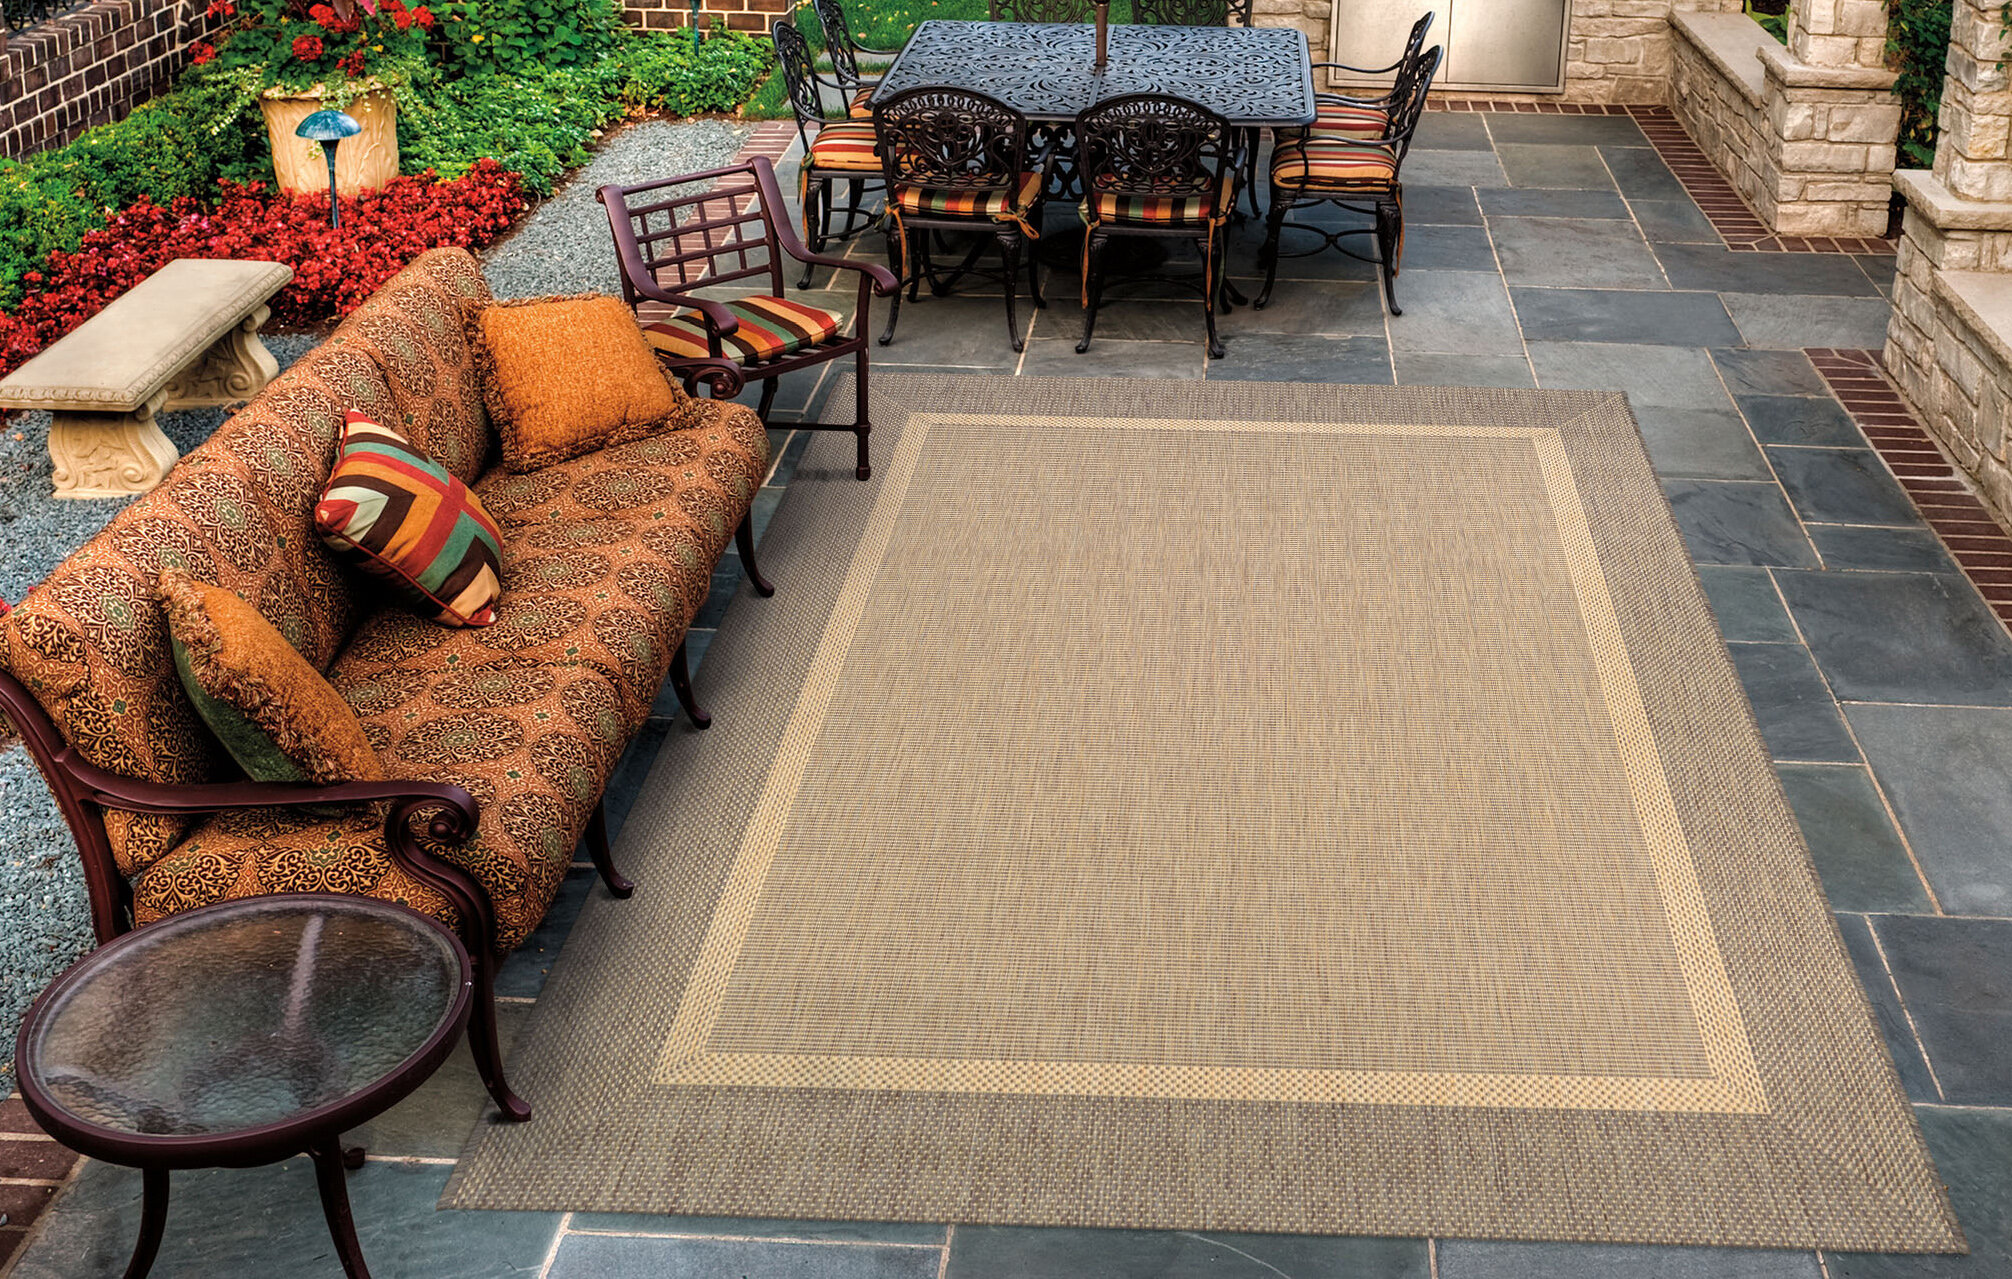 Enjoyable Saffold Texture Beige Brown Area Rug Home Interior And Landscaping Oversignezvosmurscom